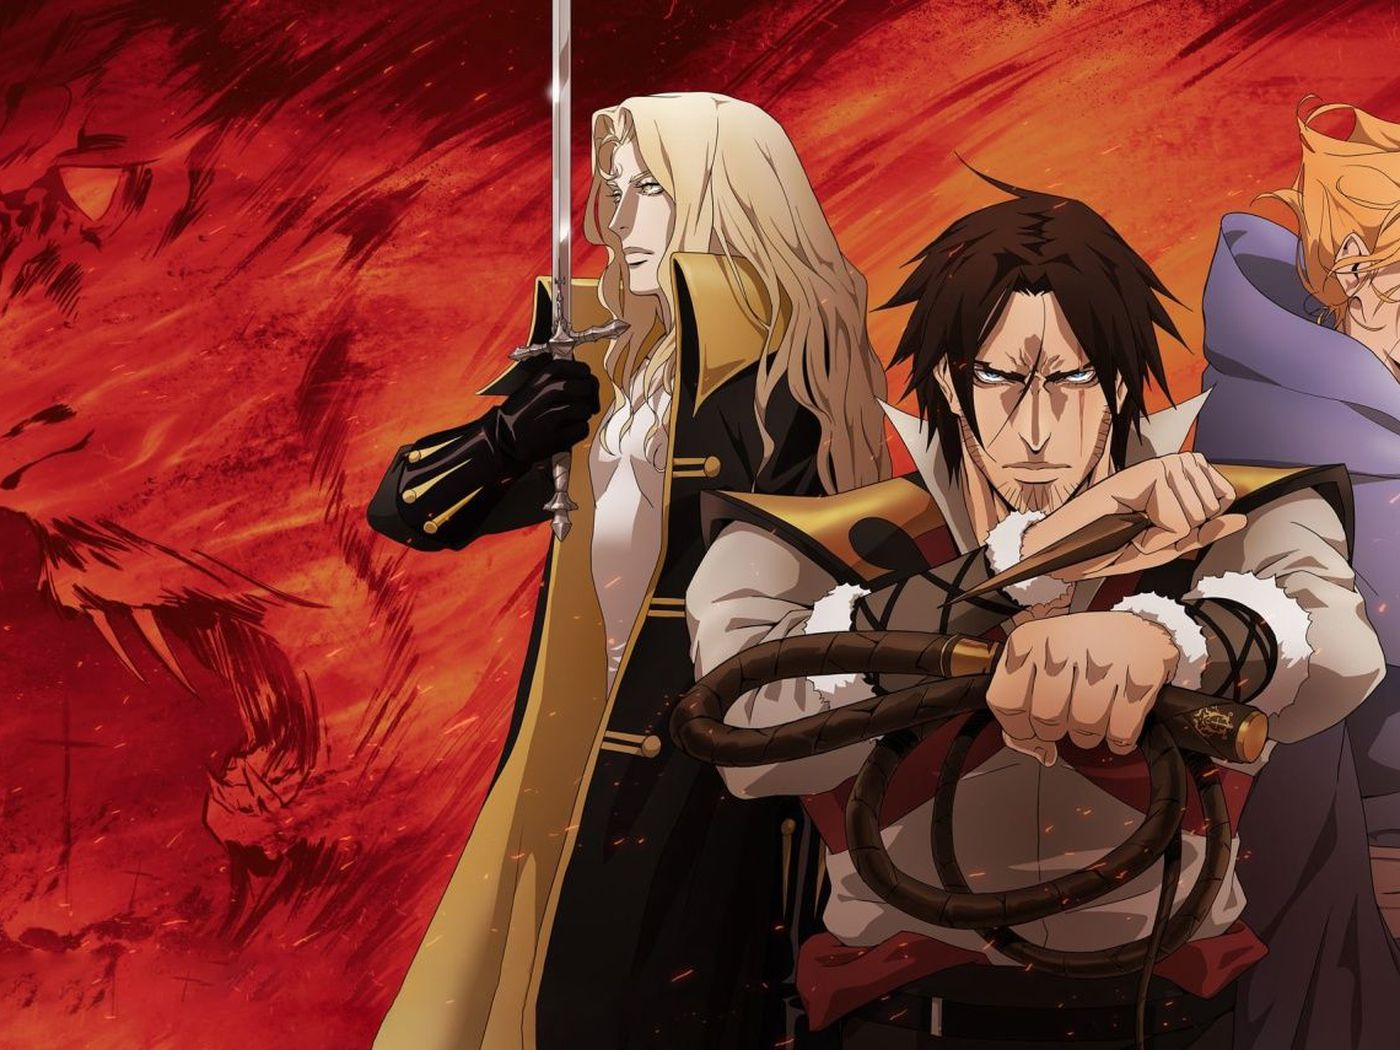 Castlevania S Netflix Anime Is On For Season 4 Polygon